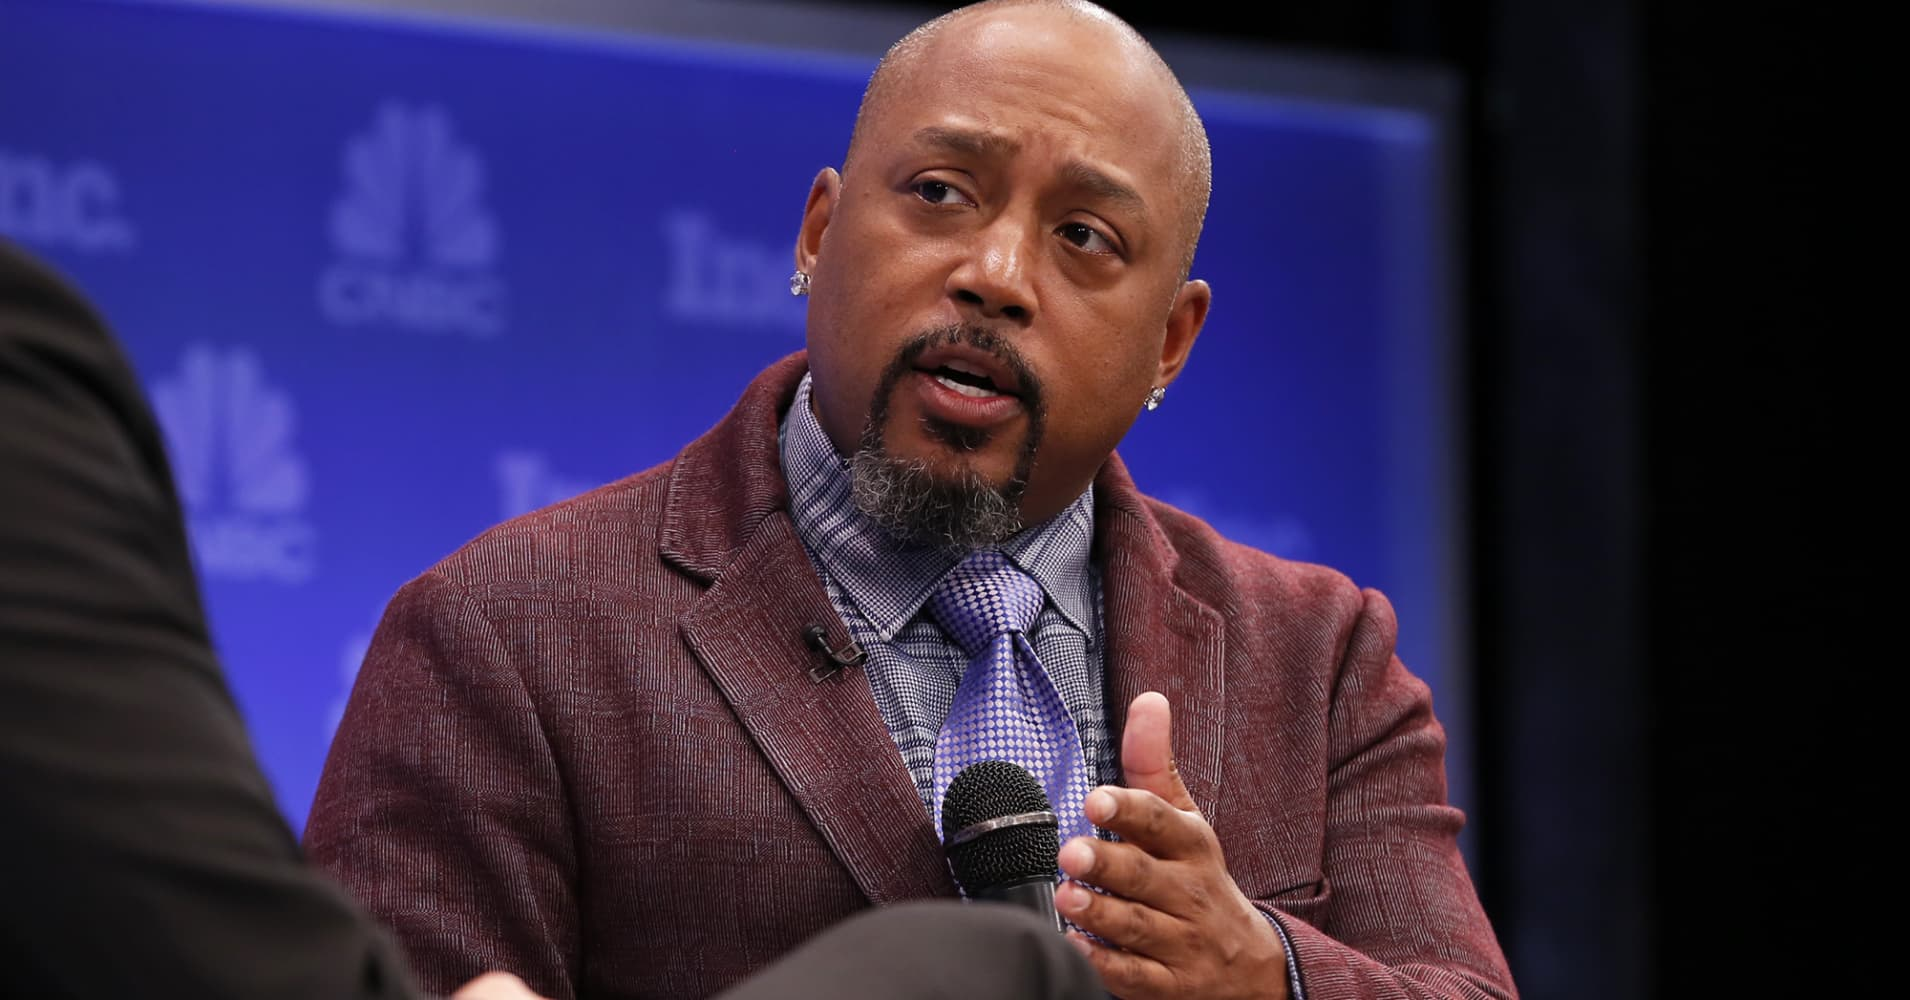 'Shark Tank's' Daymond John: 'Hip-hop was our version of today's Instagram or Twitter'